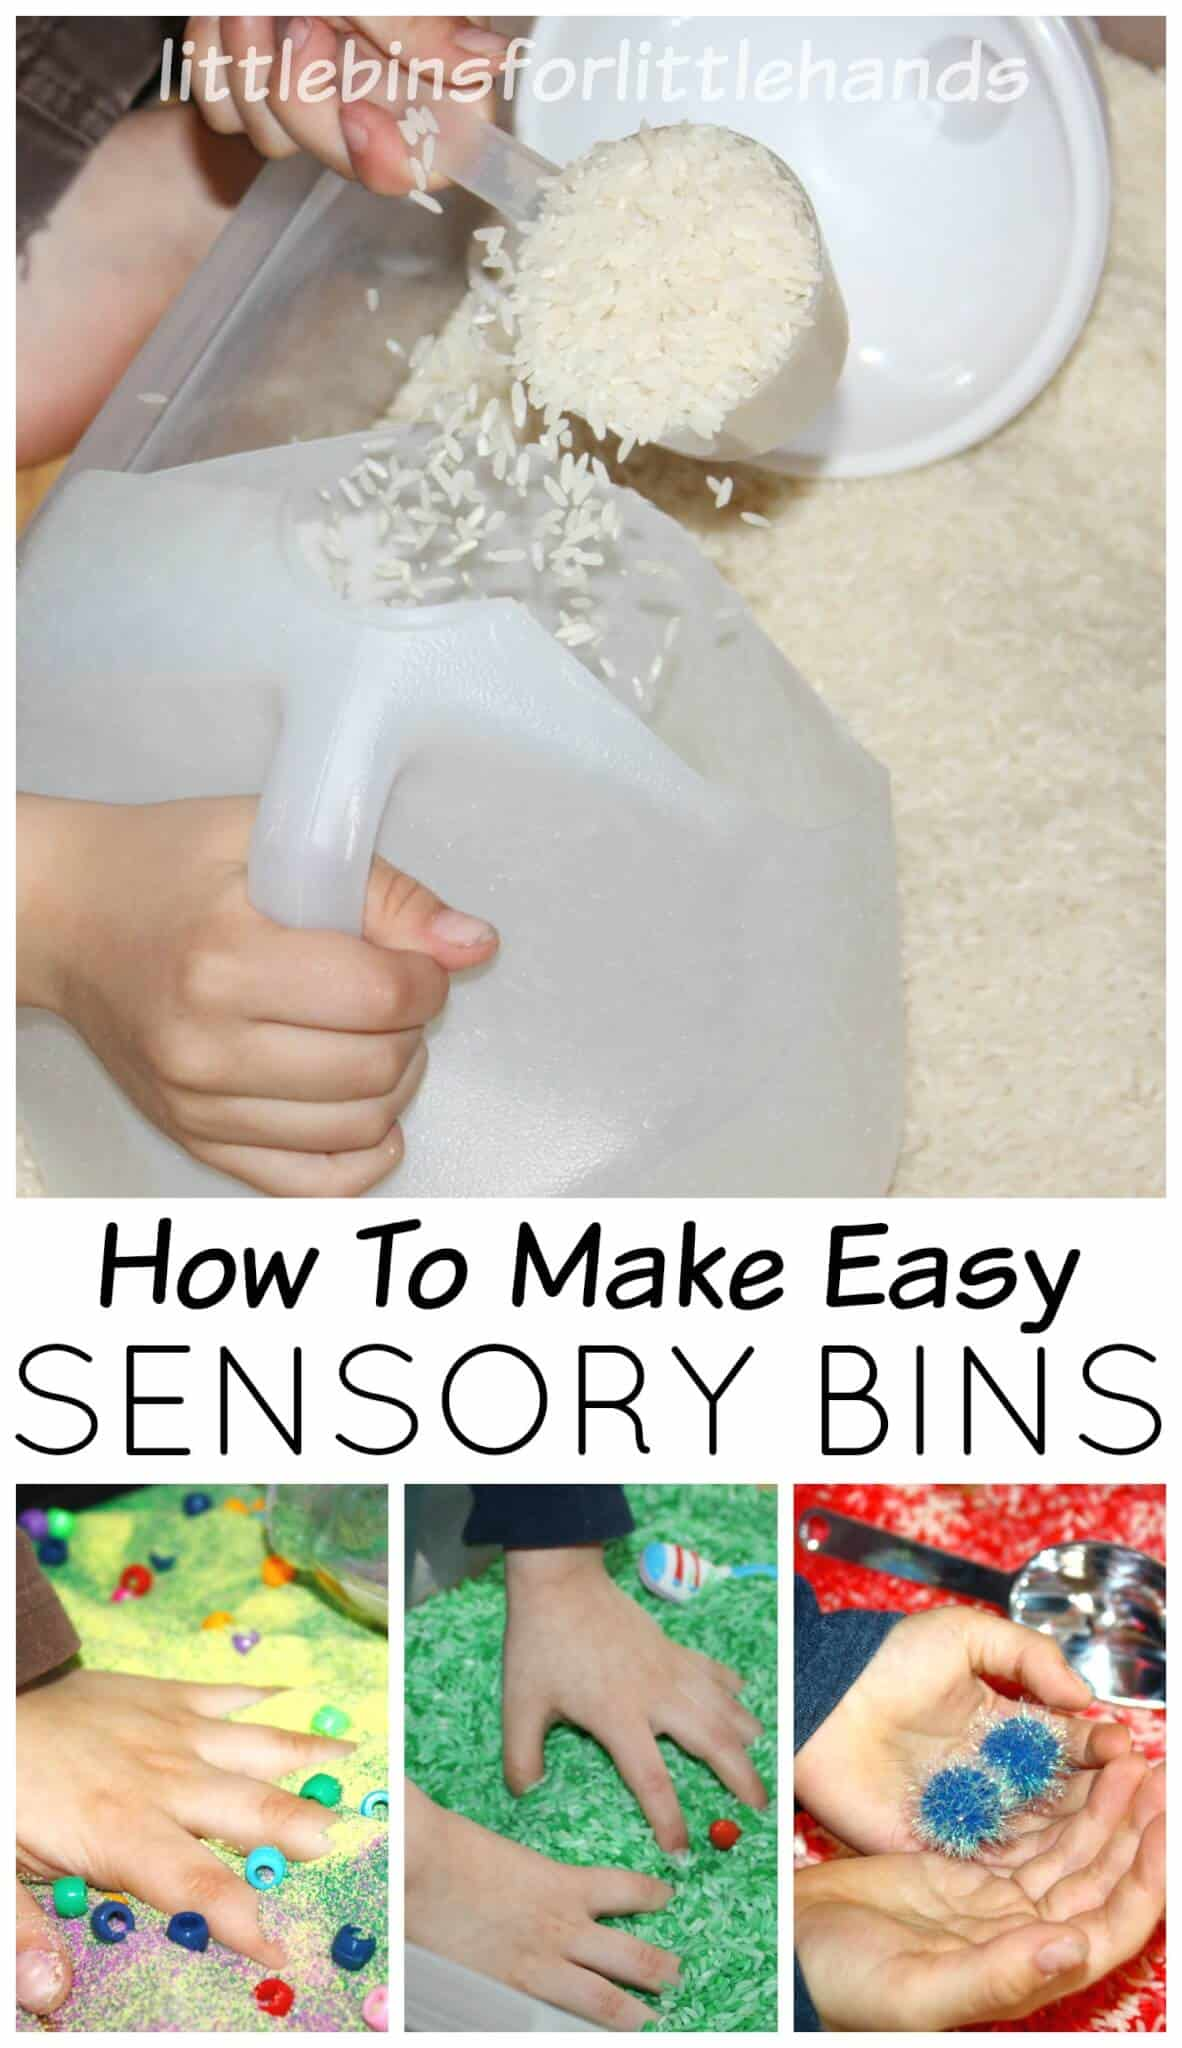 How to Make Sensory Bins for Sensory Play